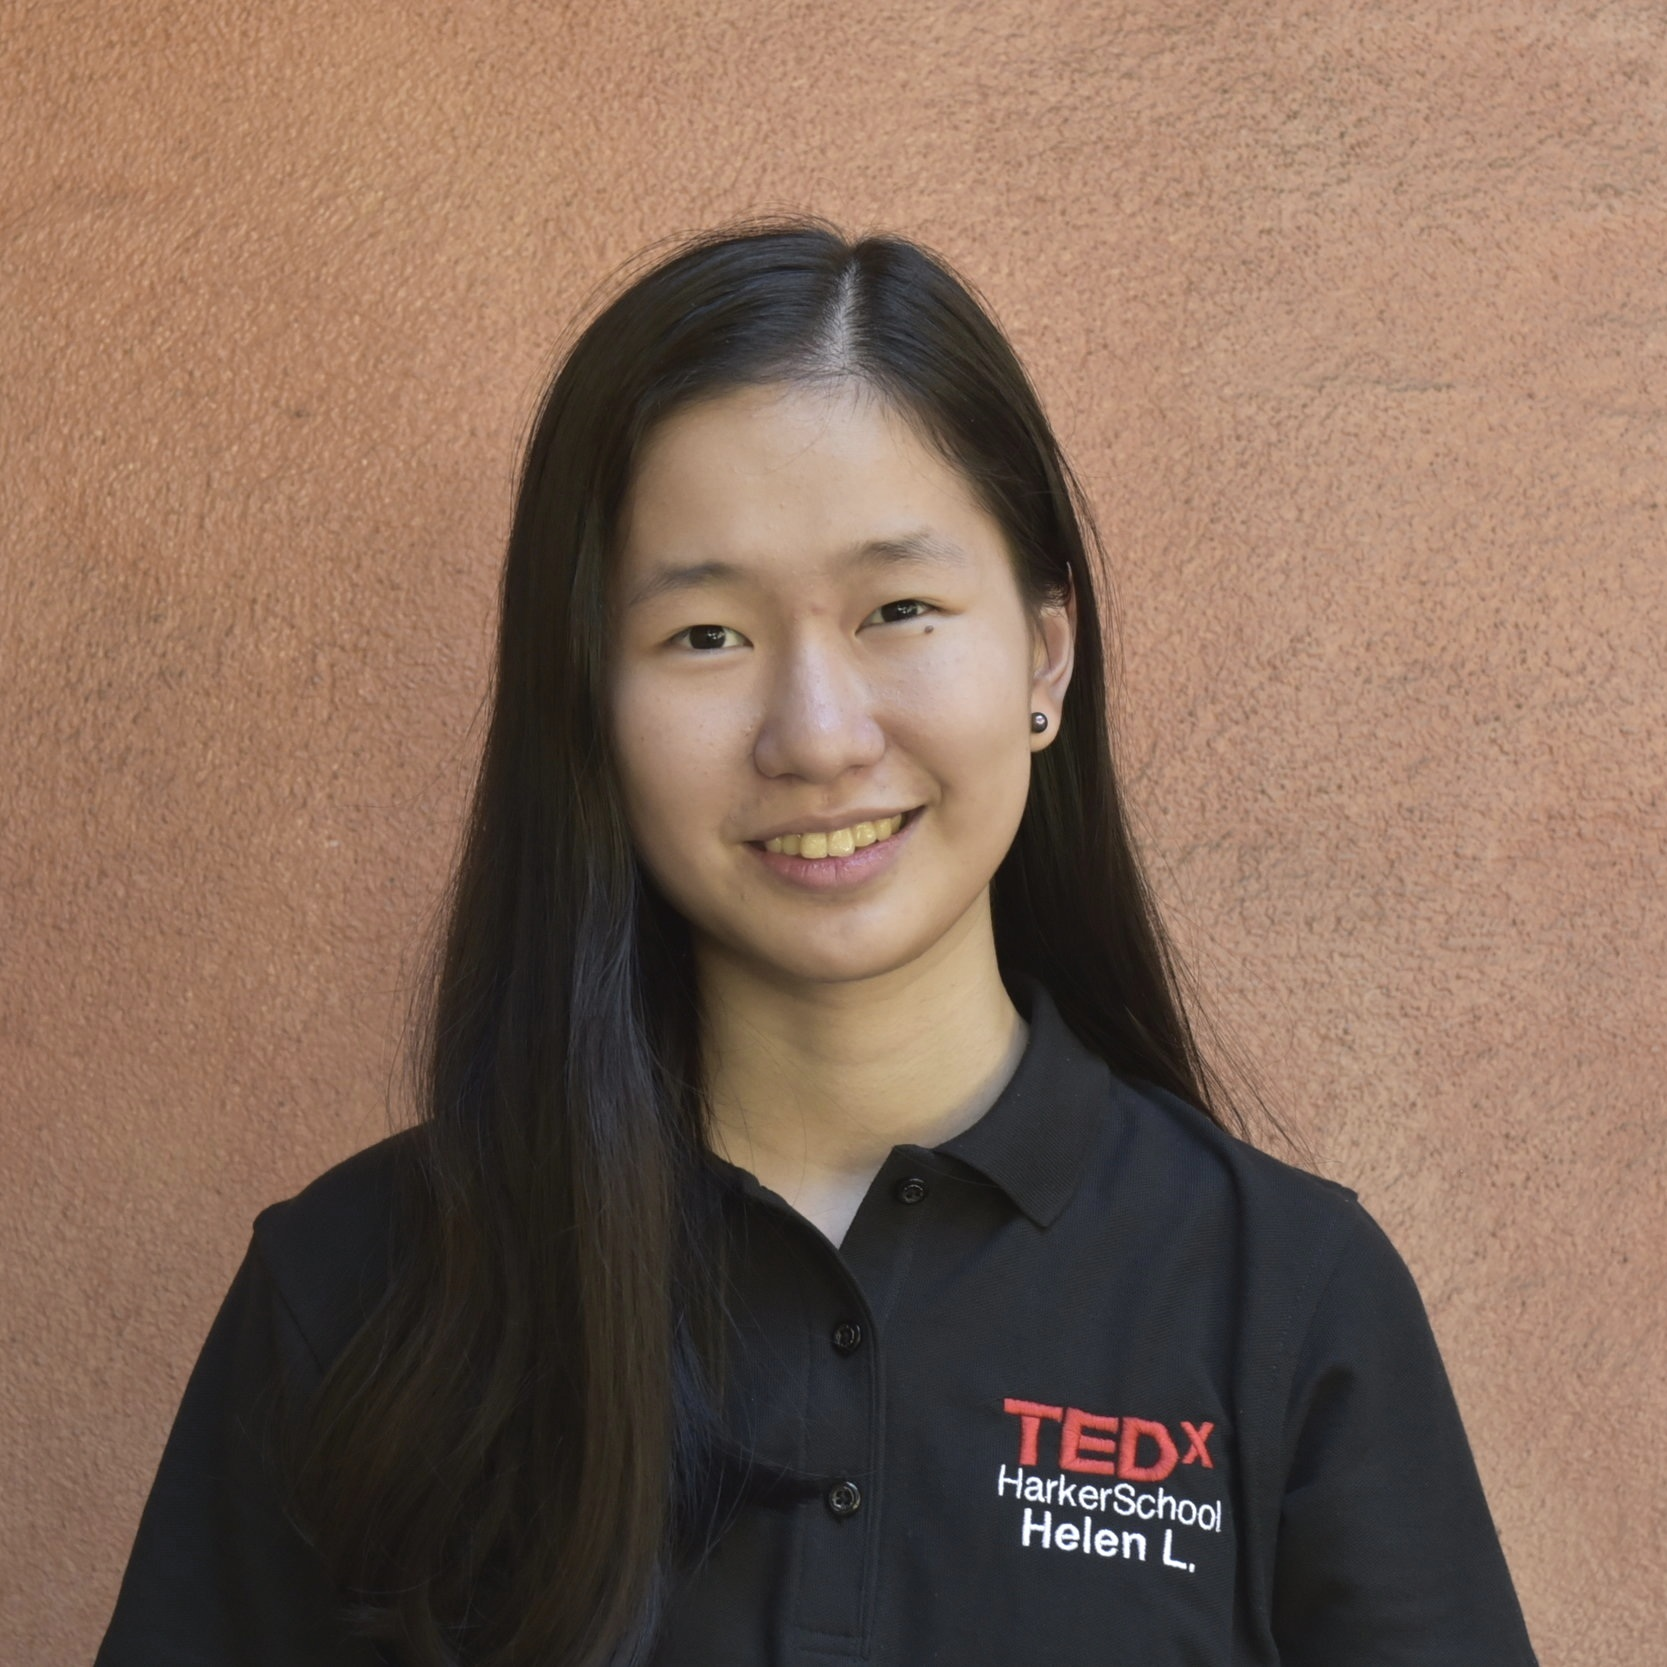 HELEN LI - Helen Li is currently a junior at The Harker School in San Jose and serves as an Operations Associate for TEDxHarkerSchool. Besides TEDx, she is also the Secretary of Class of 2021, the Publicity Officer of WiSTEM, and an active member of Harker's Congressional Debate Team. Additionally, she pursues research and works at a lab outside of school. In her free time, she enjoys learning new programming languages, volunteering, reading, watching reality tv shows, and exploring new restaurants.